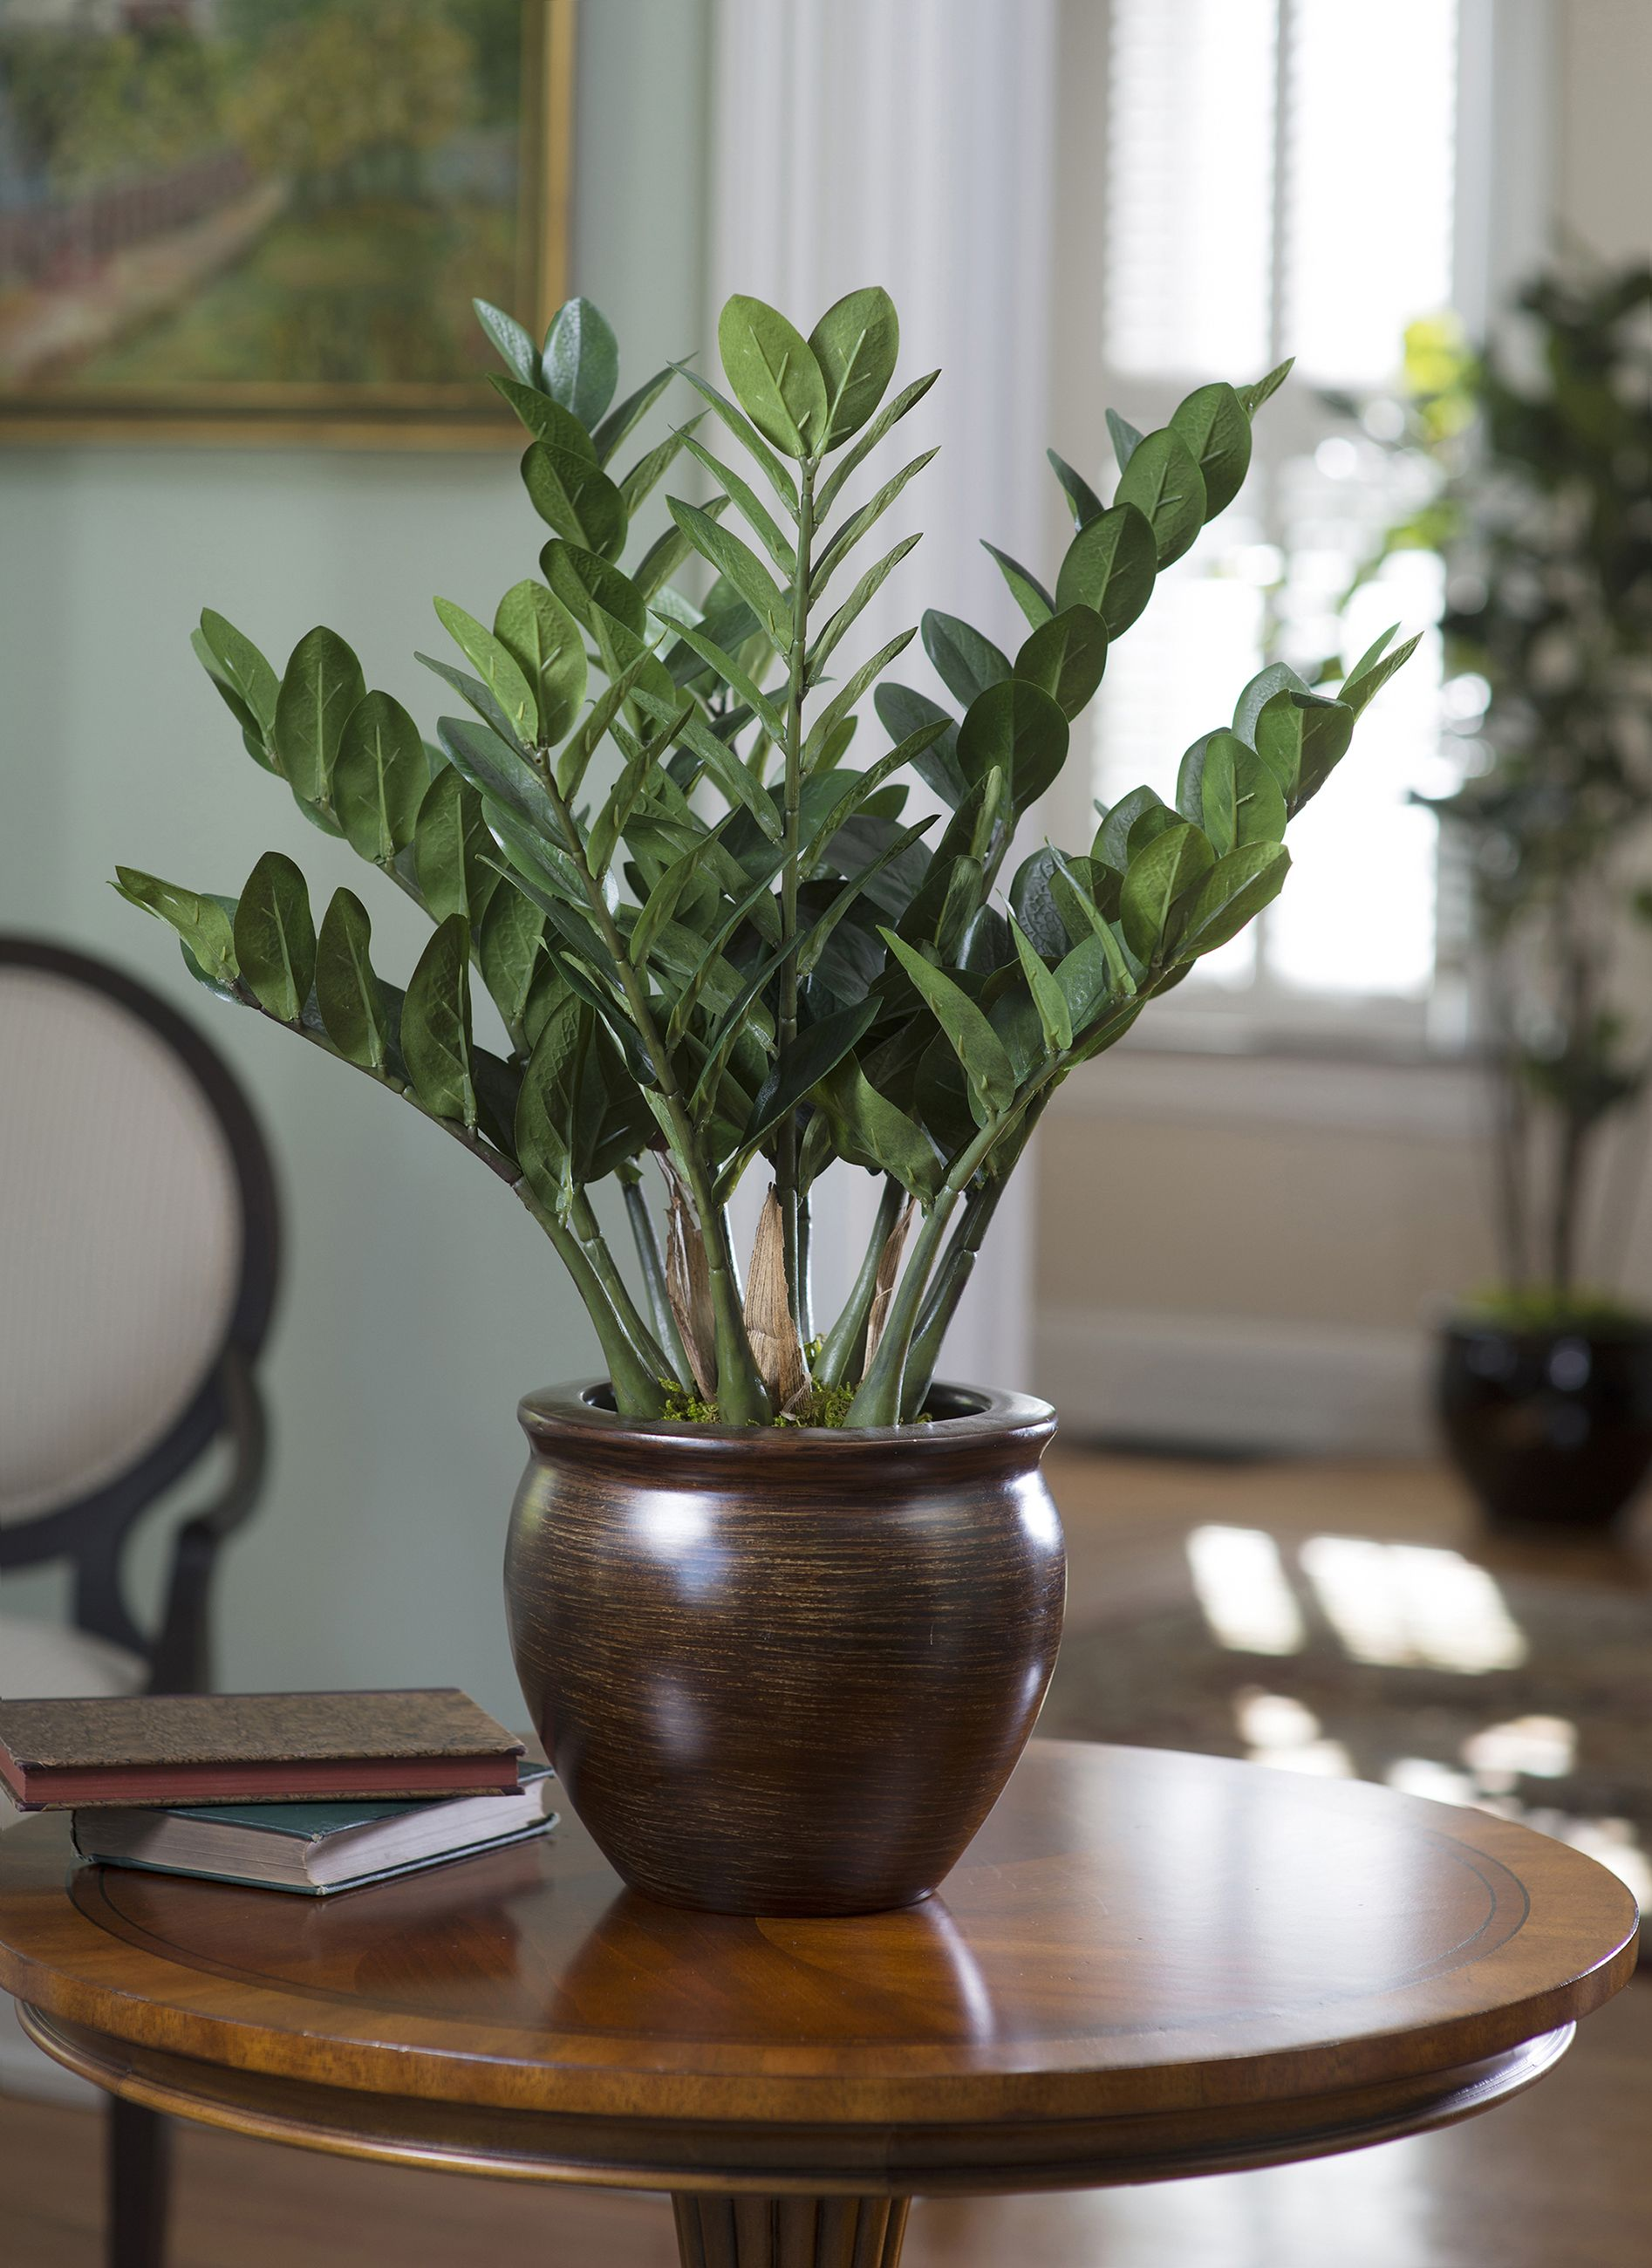 Zamioculcas Pflege Zz Plant Zamioculcas Or Zz Fits Just About Every Need Handles Low